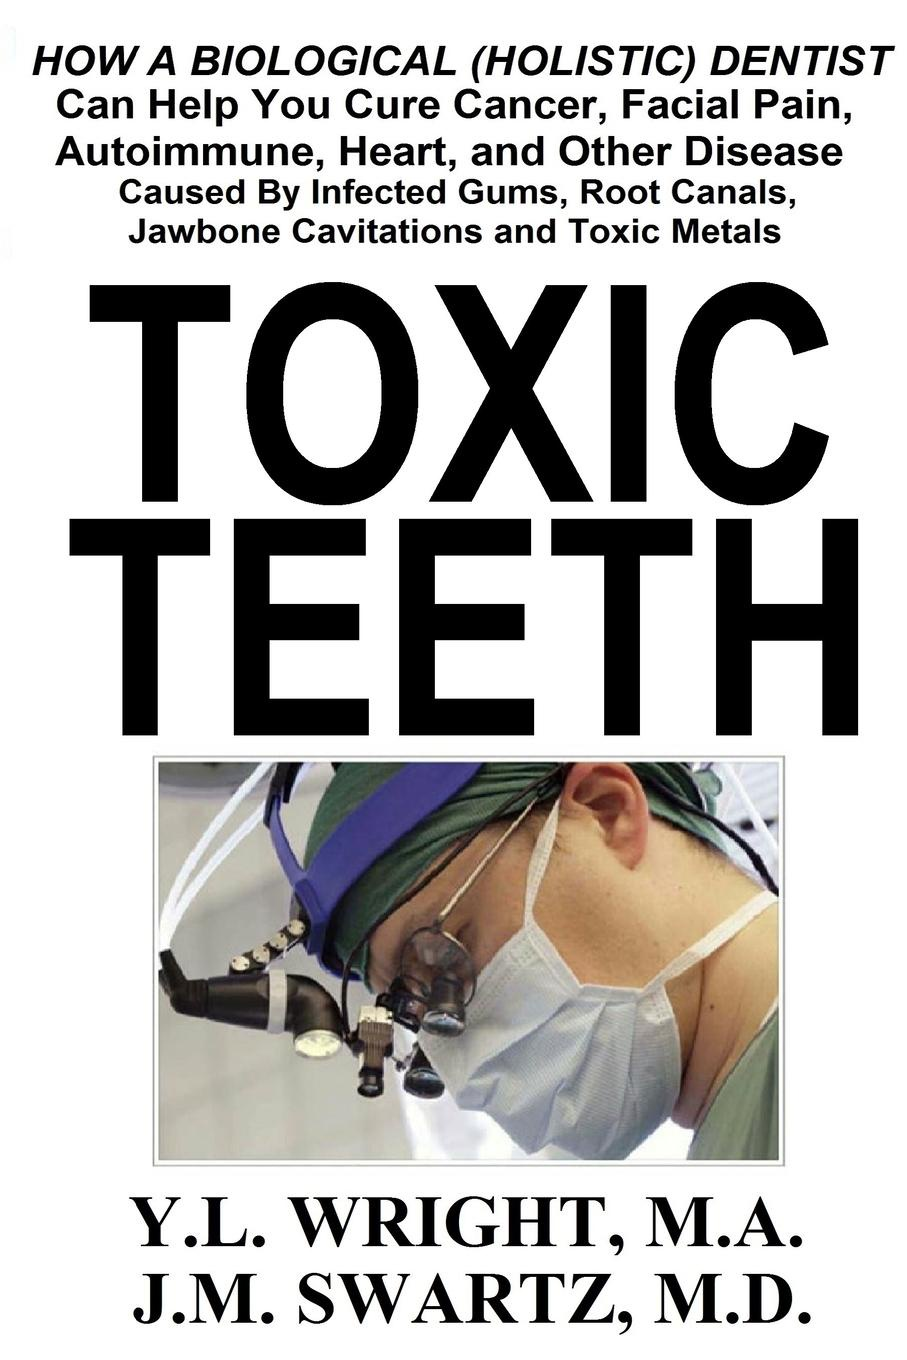 Y.L. Wright M.A., J.M. Swartz M.D. Toxic Teeth. How a Biological (Holistic) Dentist Can Help You Cure Cancer, Facial Pain, Autoimmune, Heart, and Other Disease Caused By Infected Gums, Root Canals, Jawbone Cavitations, and Toxic Metals dental orthodontics typodont teeth model metal brace bracket typodont with arch wire